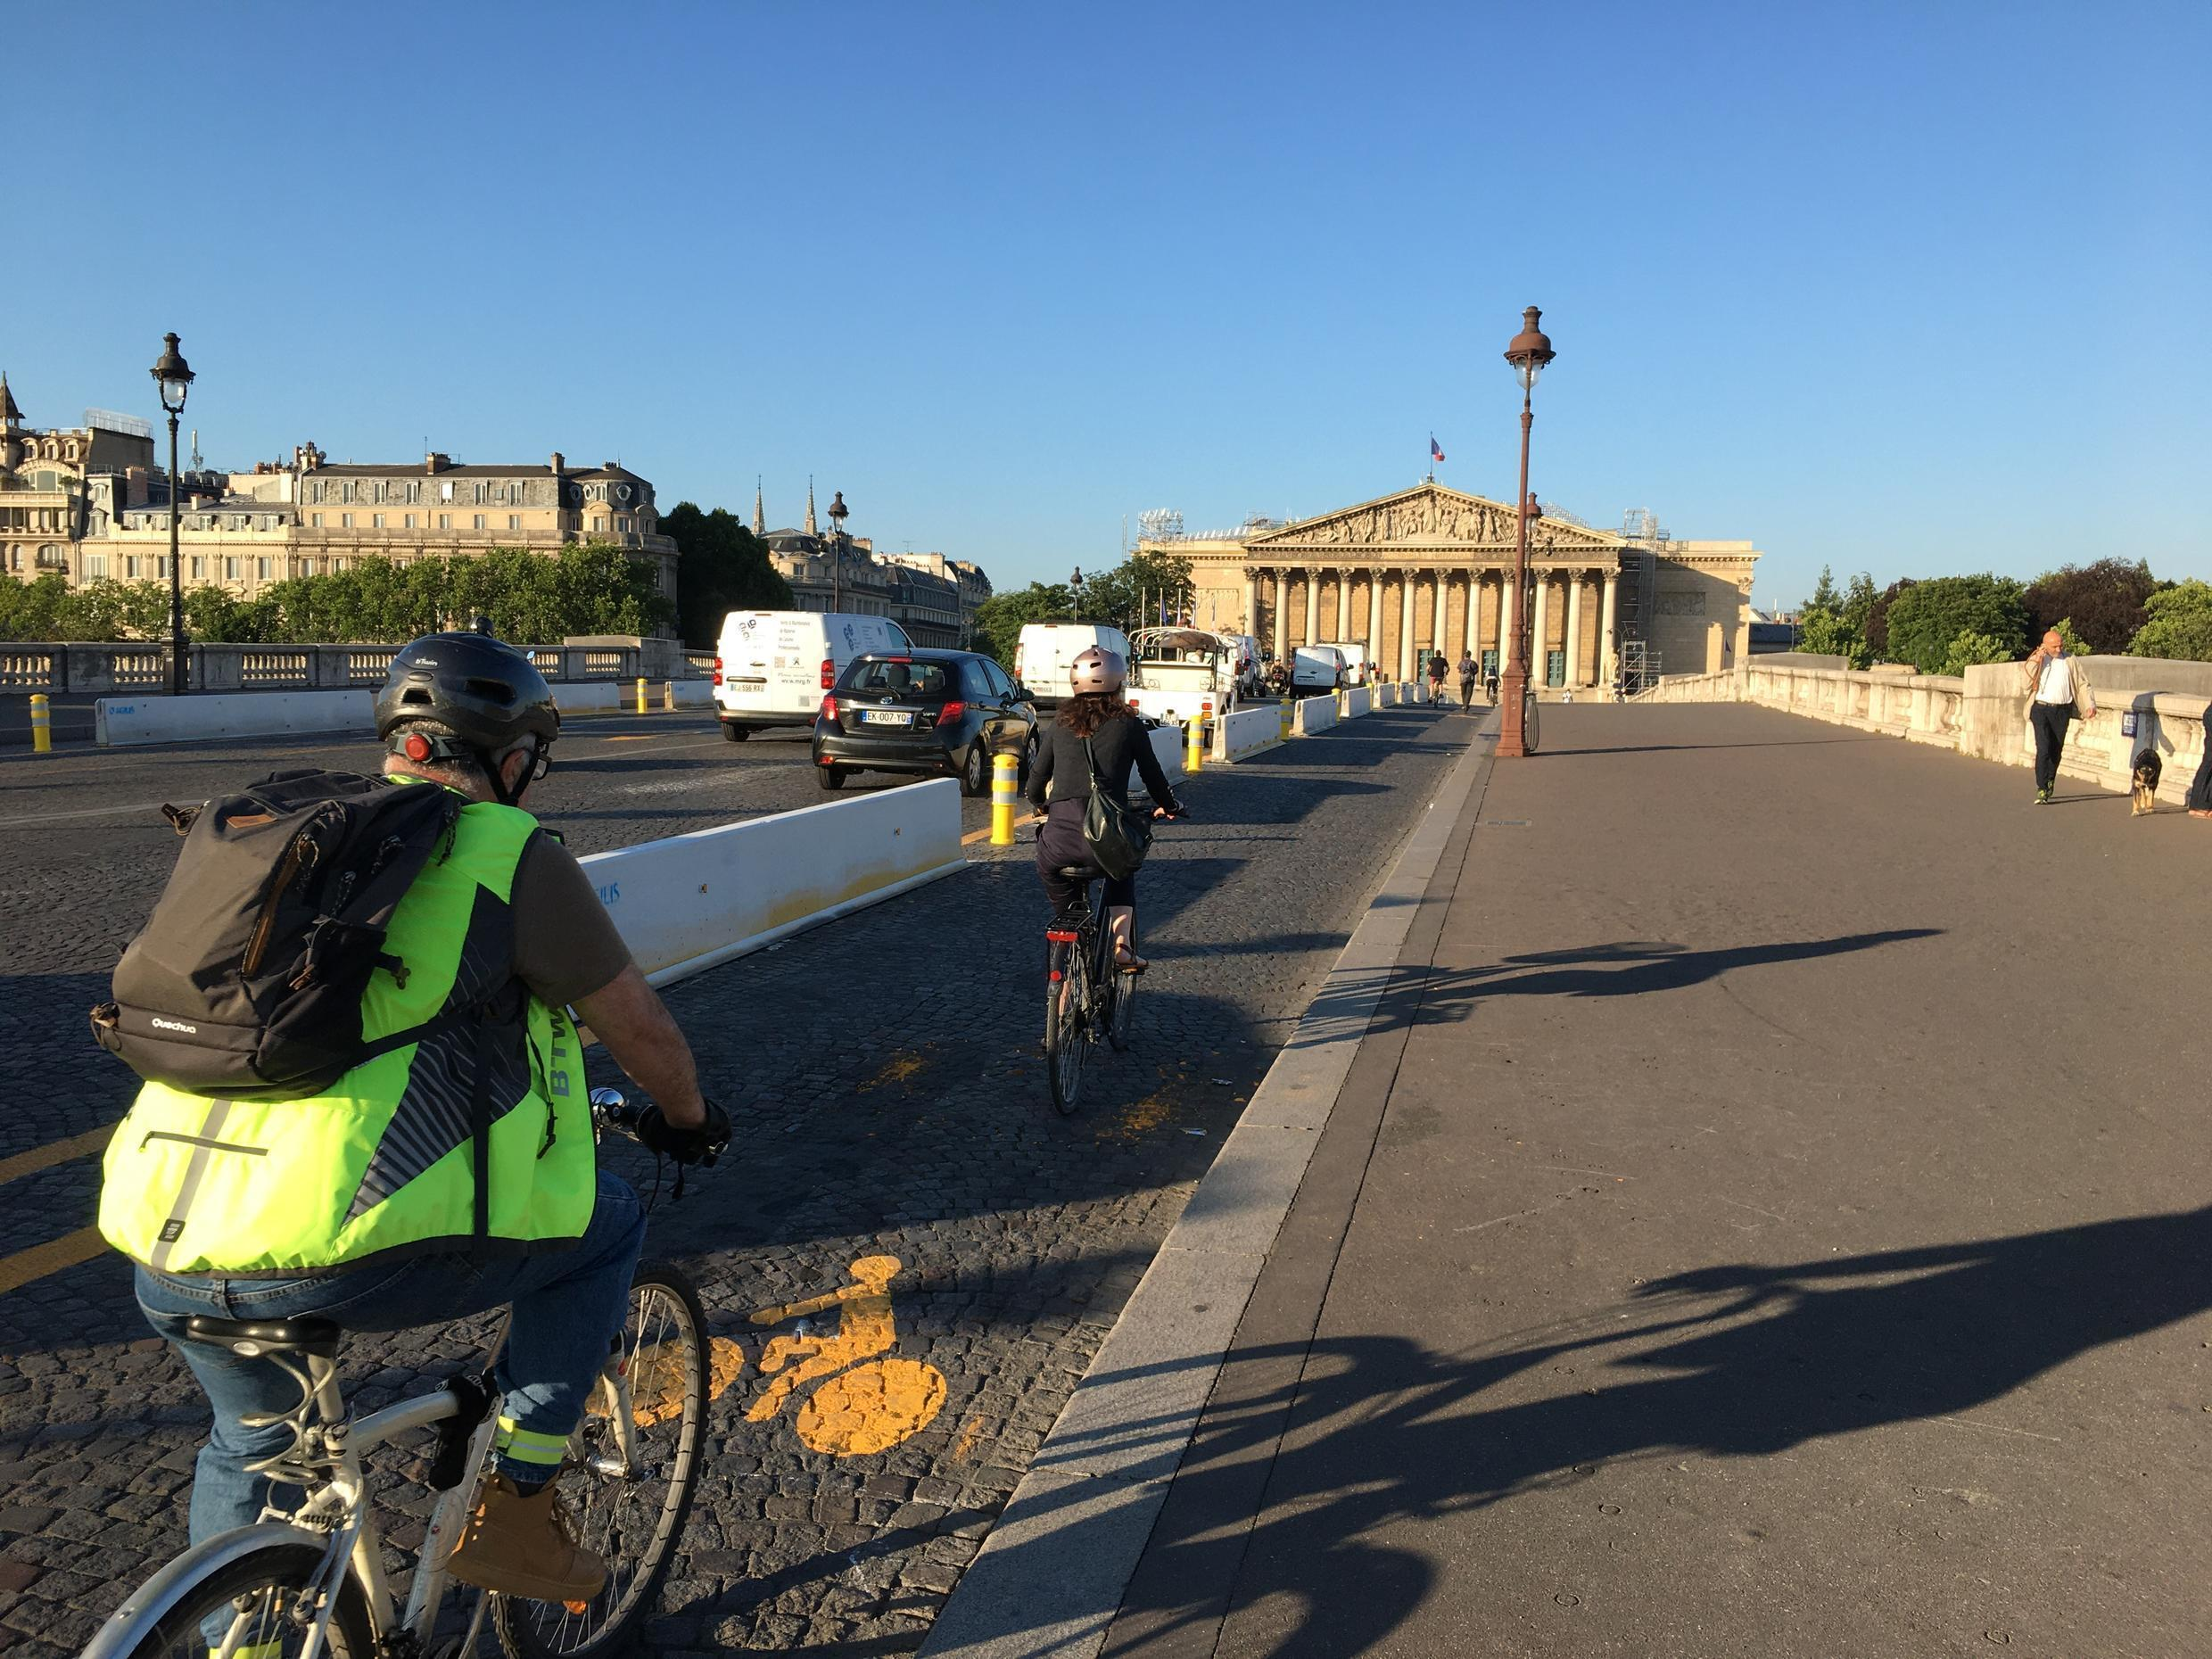 The Pont de la Concorde bridge over Paris's Seine River, leading to the French National Assembly, features one of the temporary bike lanes expected to become permanent in the first part of Mayor Anne Hidalgo's second term.